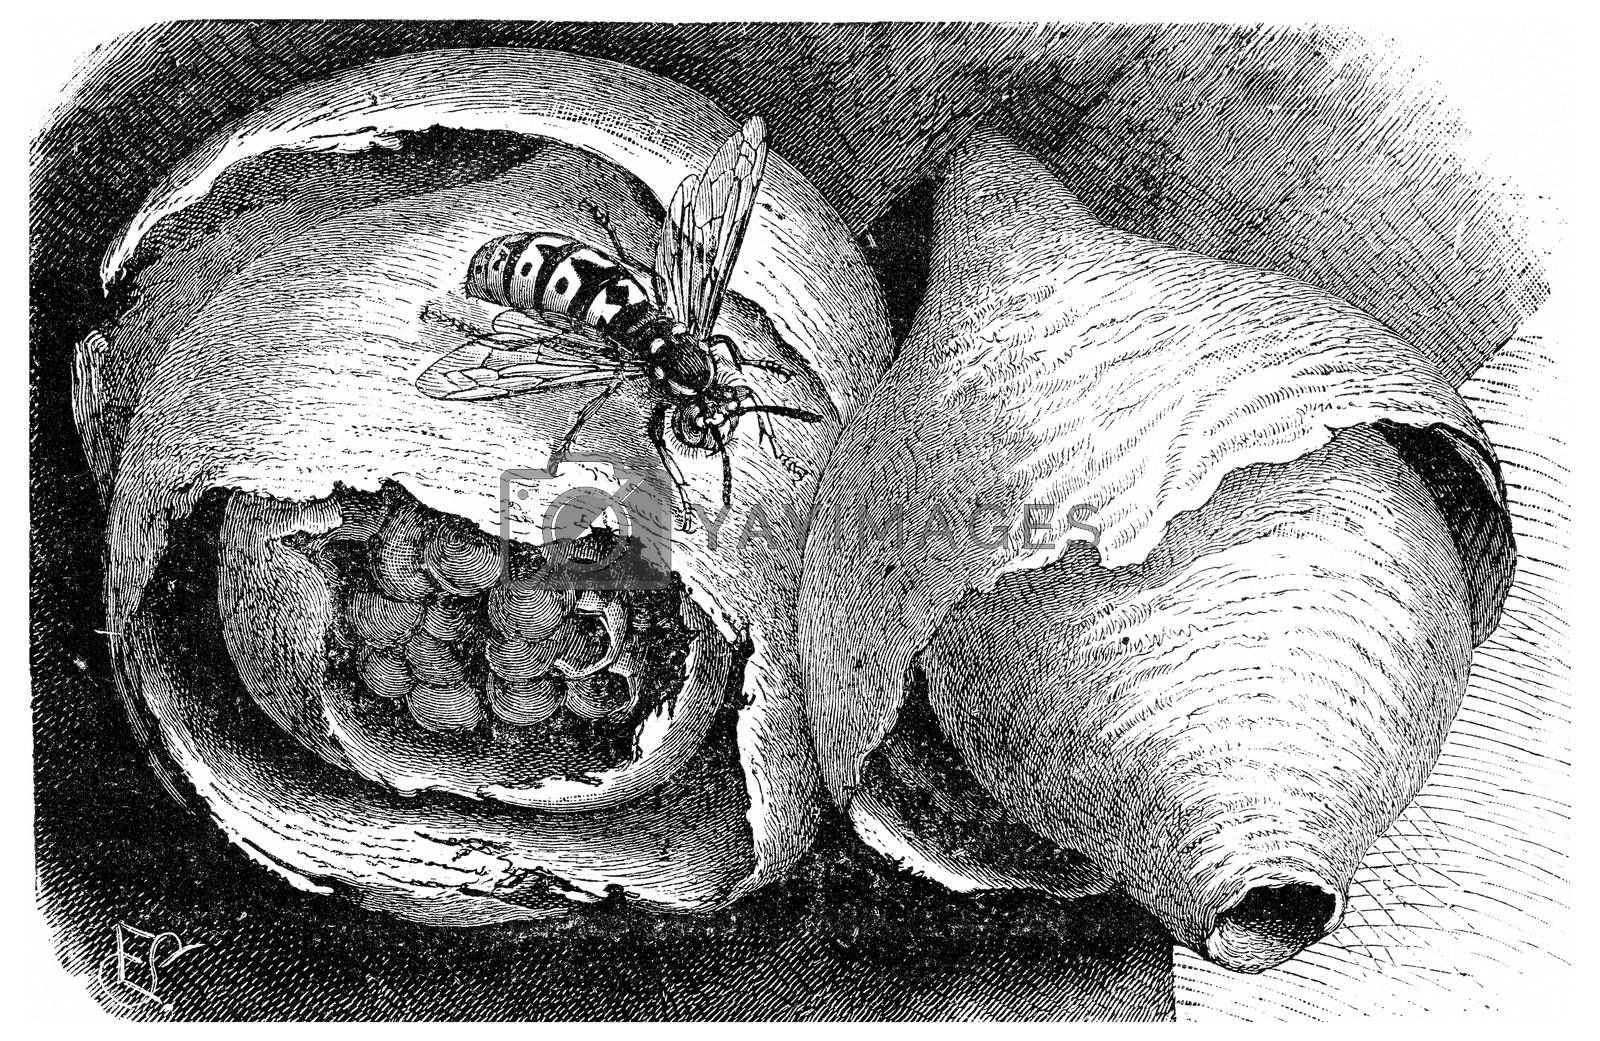 Wasp (paper wasp) and its nest, vintage engraving. by Morphart